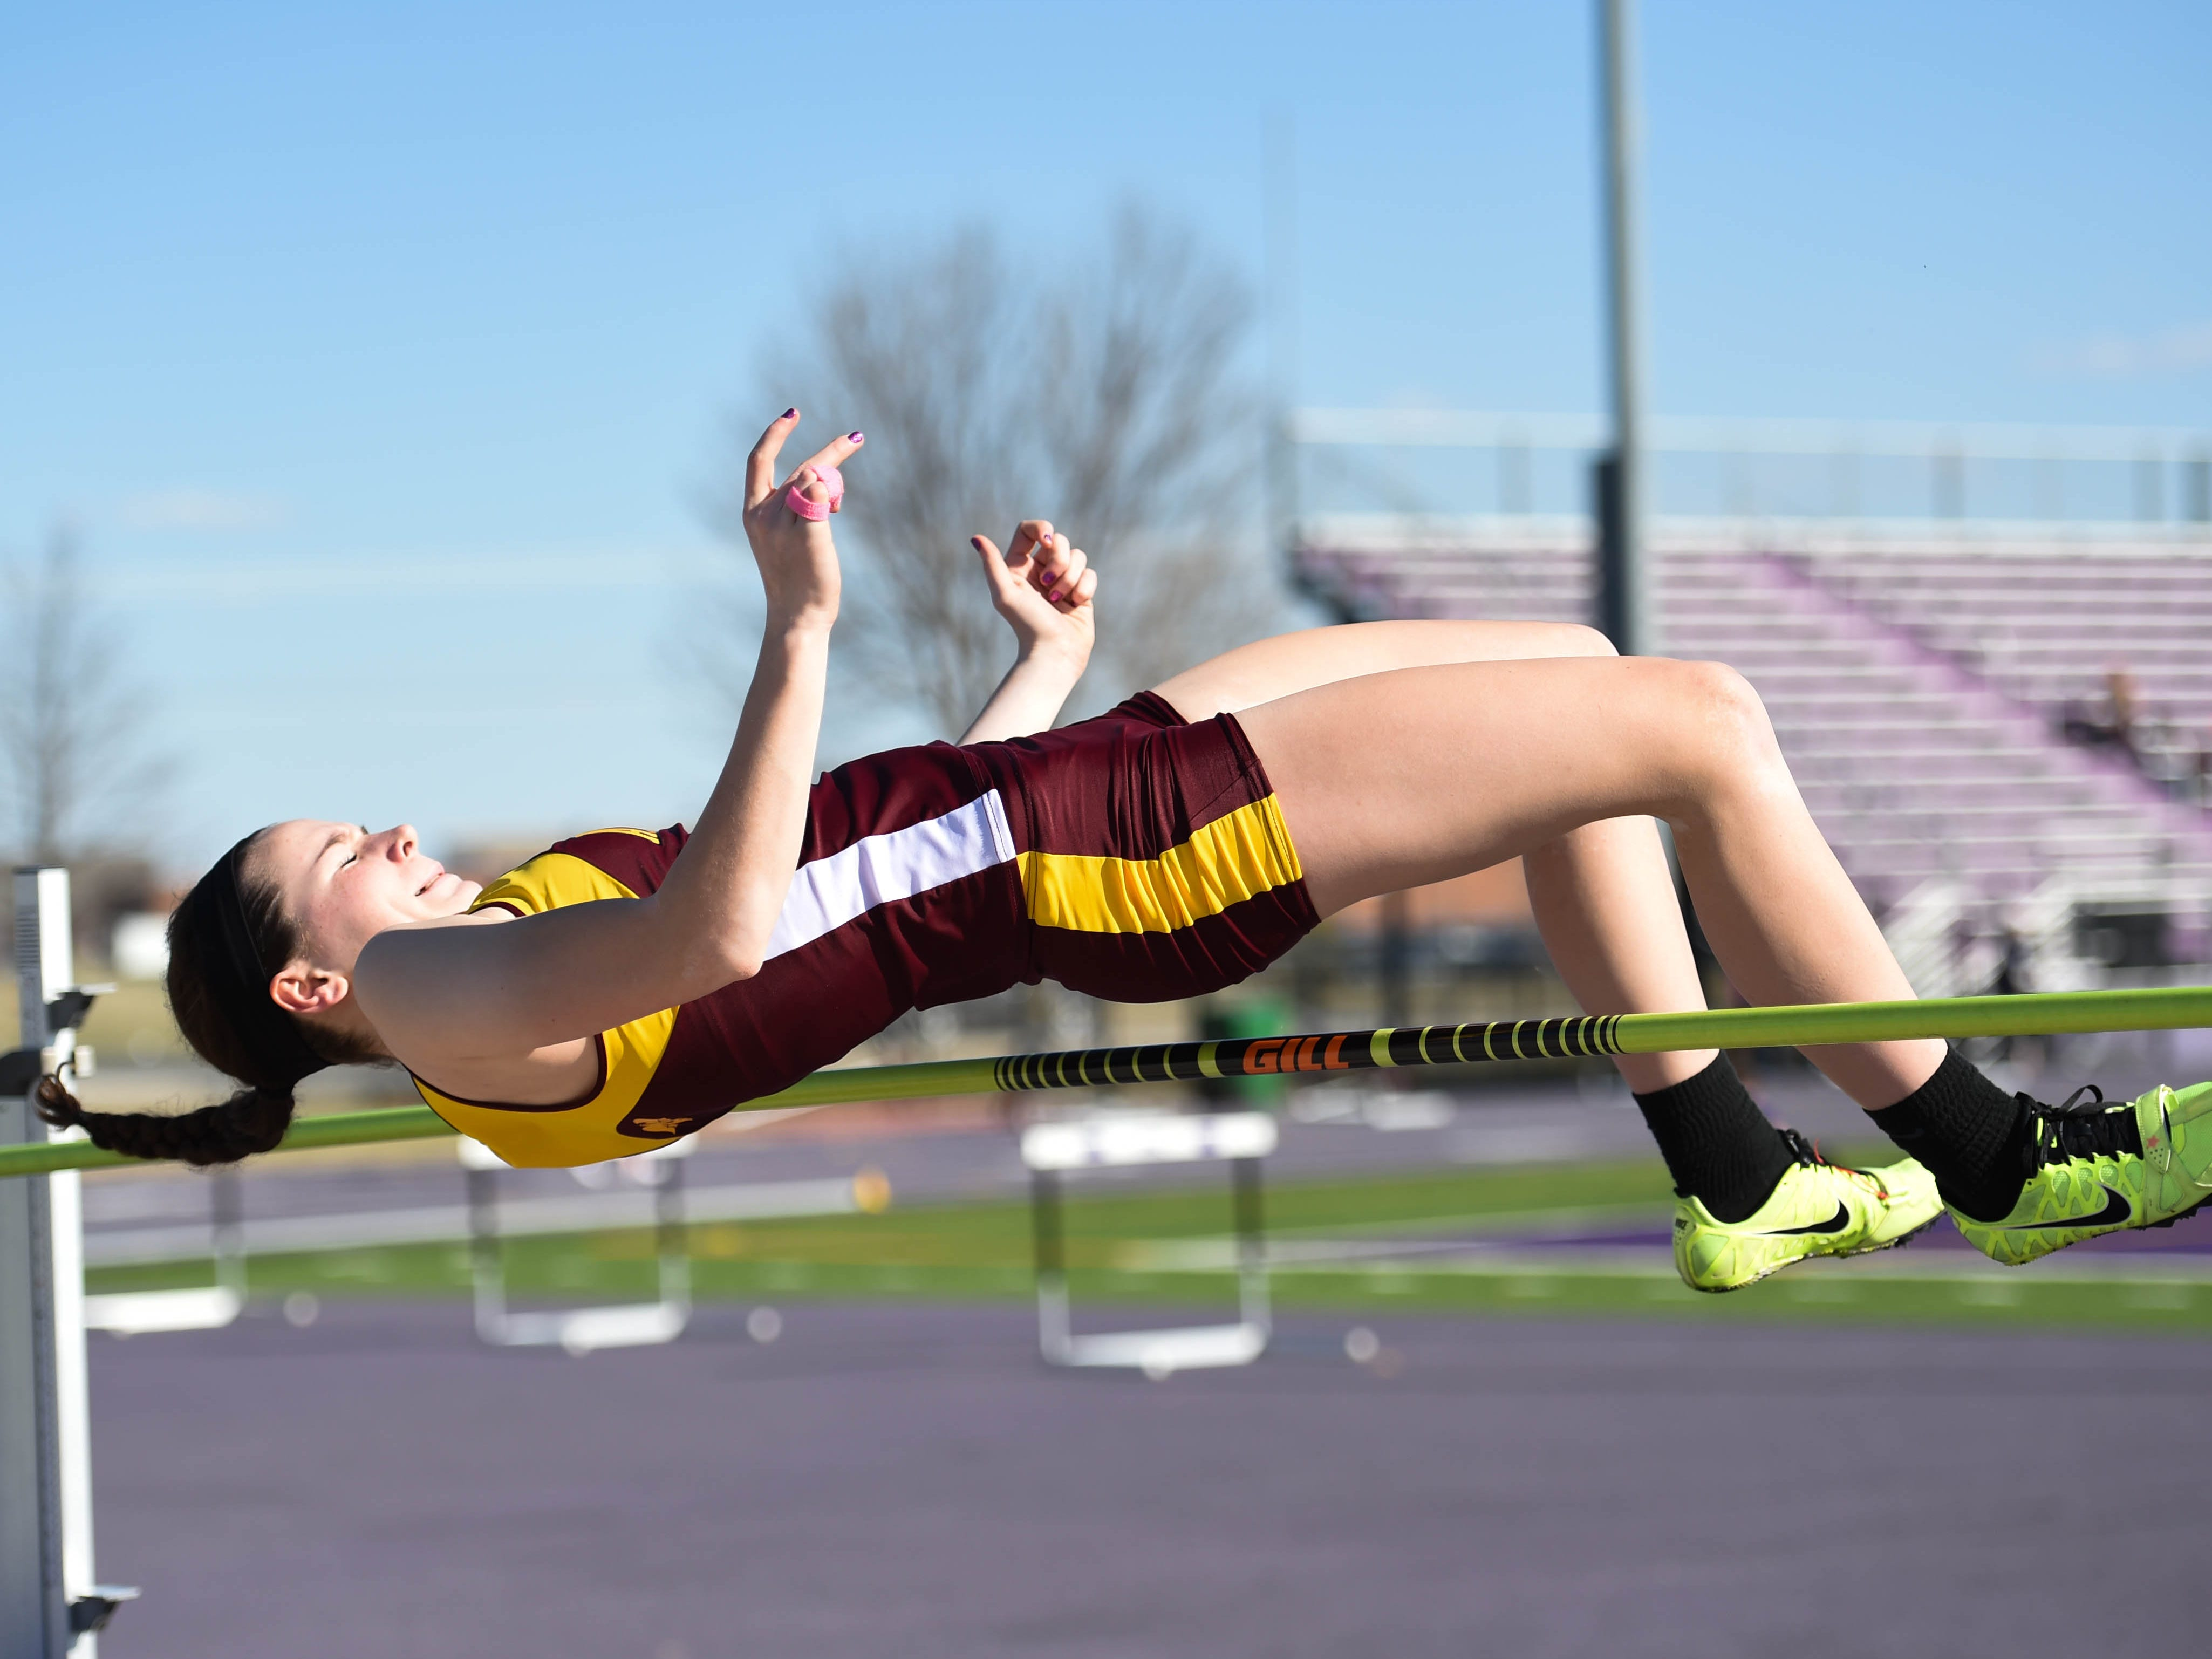 Ankeny's Alyssa Mulcahy, a junior, grimaces as she waits to see if she cleared the bar at the Waukee Invitational track meet on March 31.